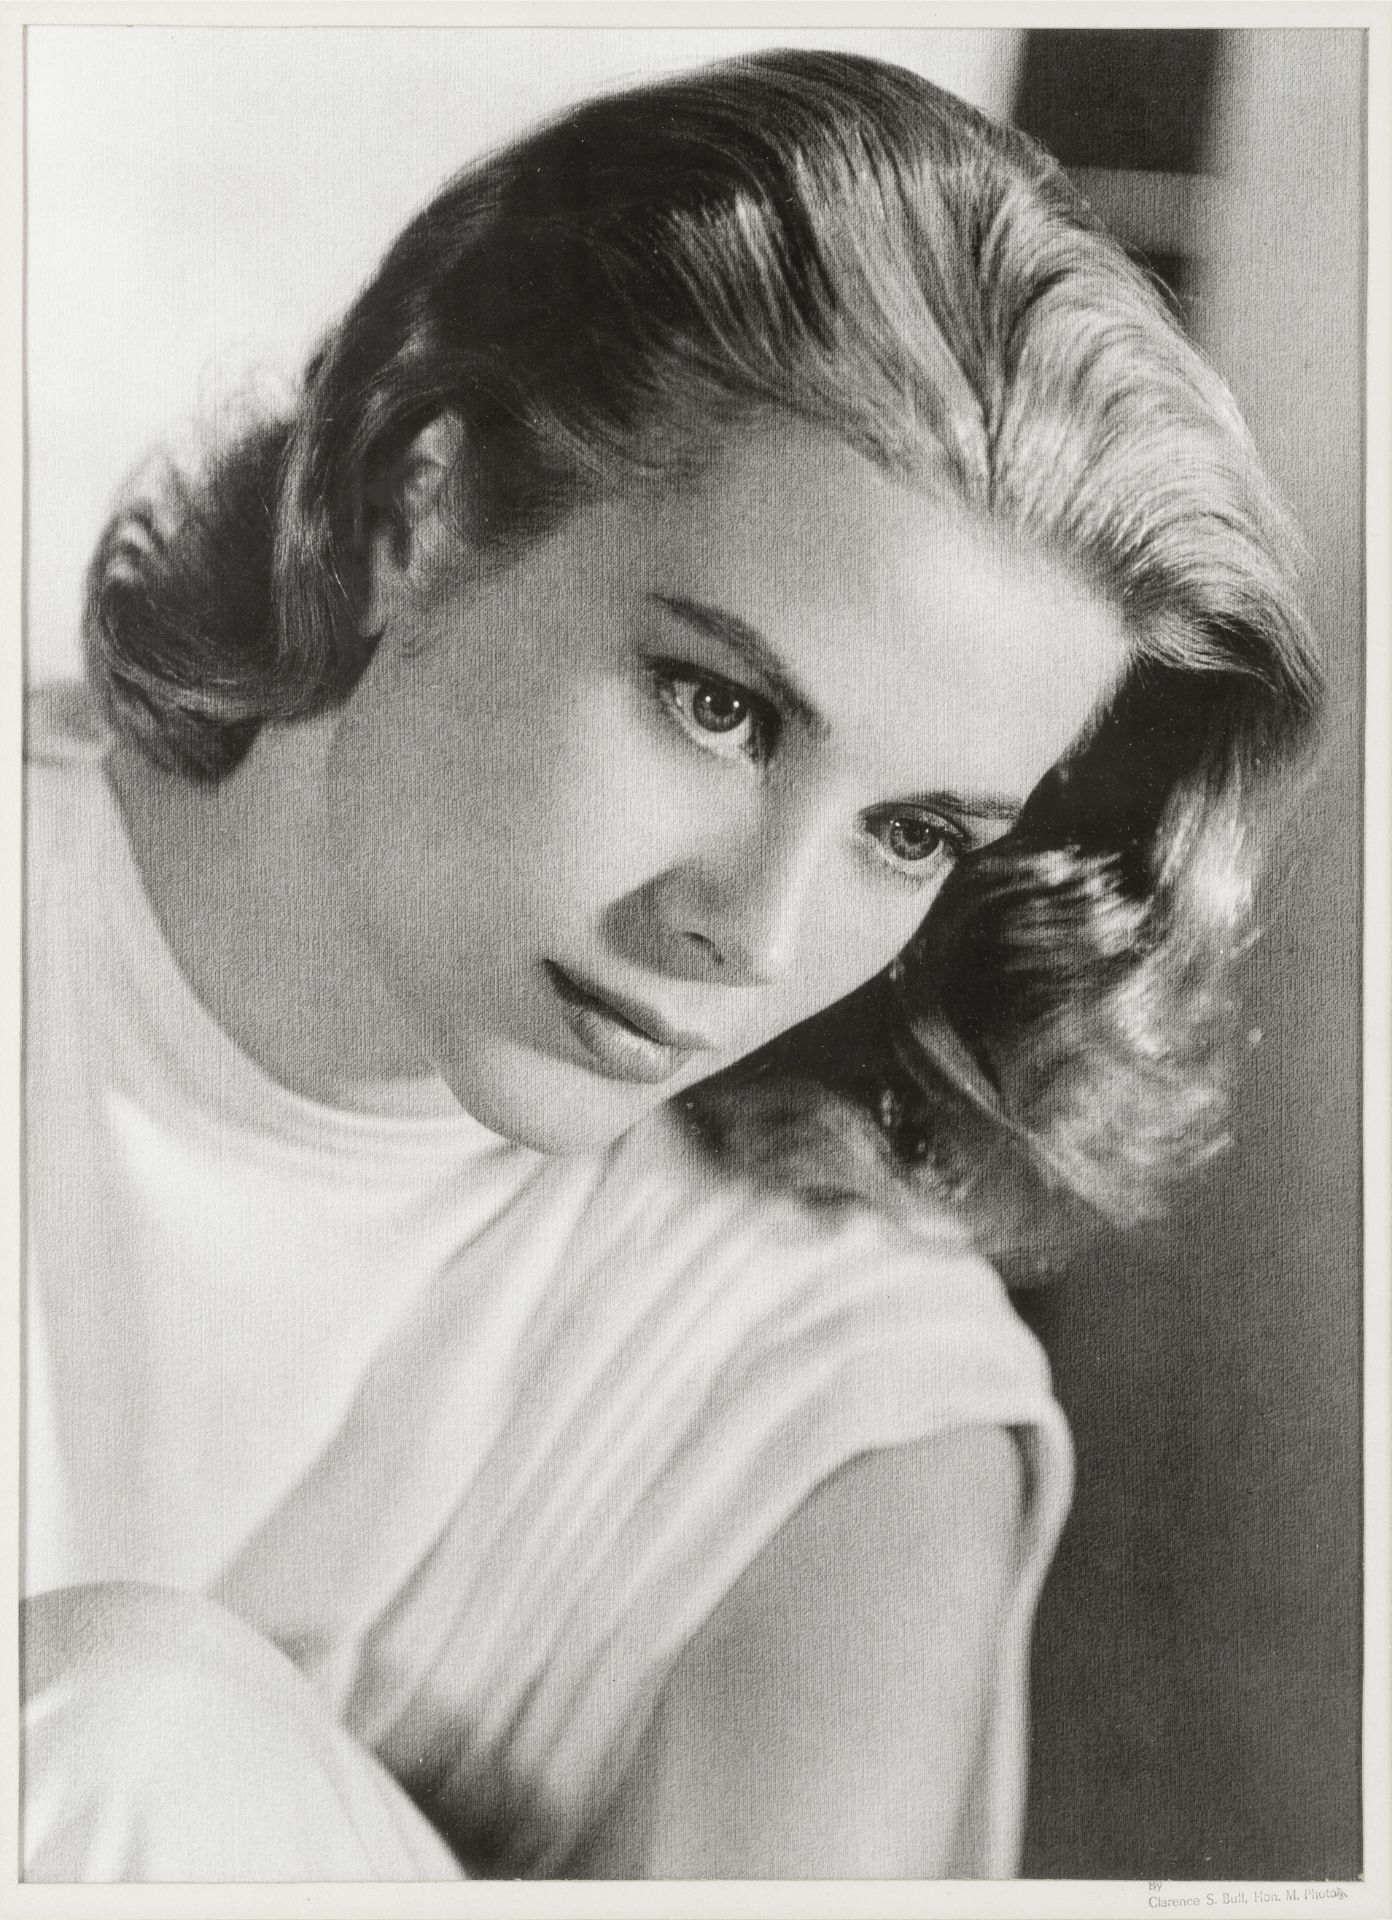 CLARENCE SINCLAIR BULL (American, 1896–1979): A print of Grace Kelly, 1956,